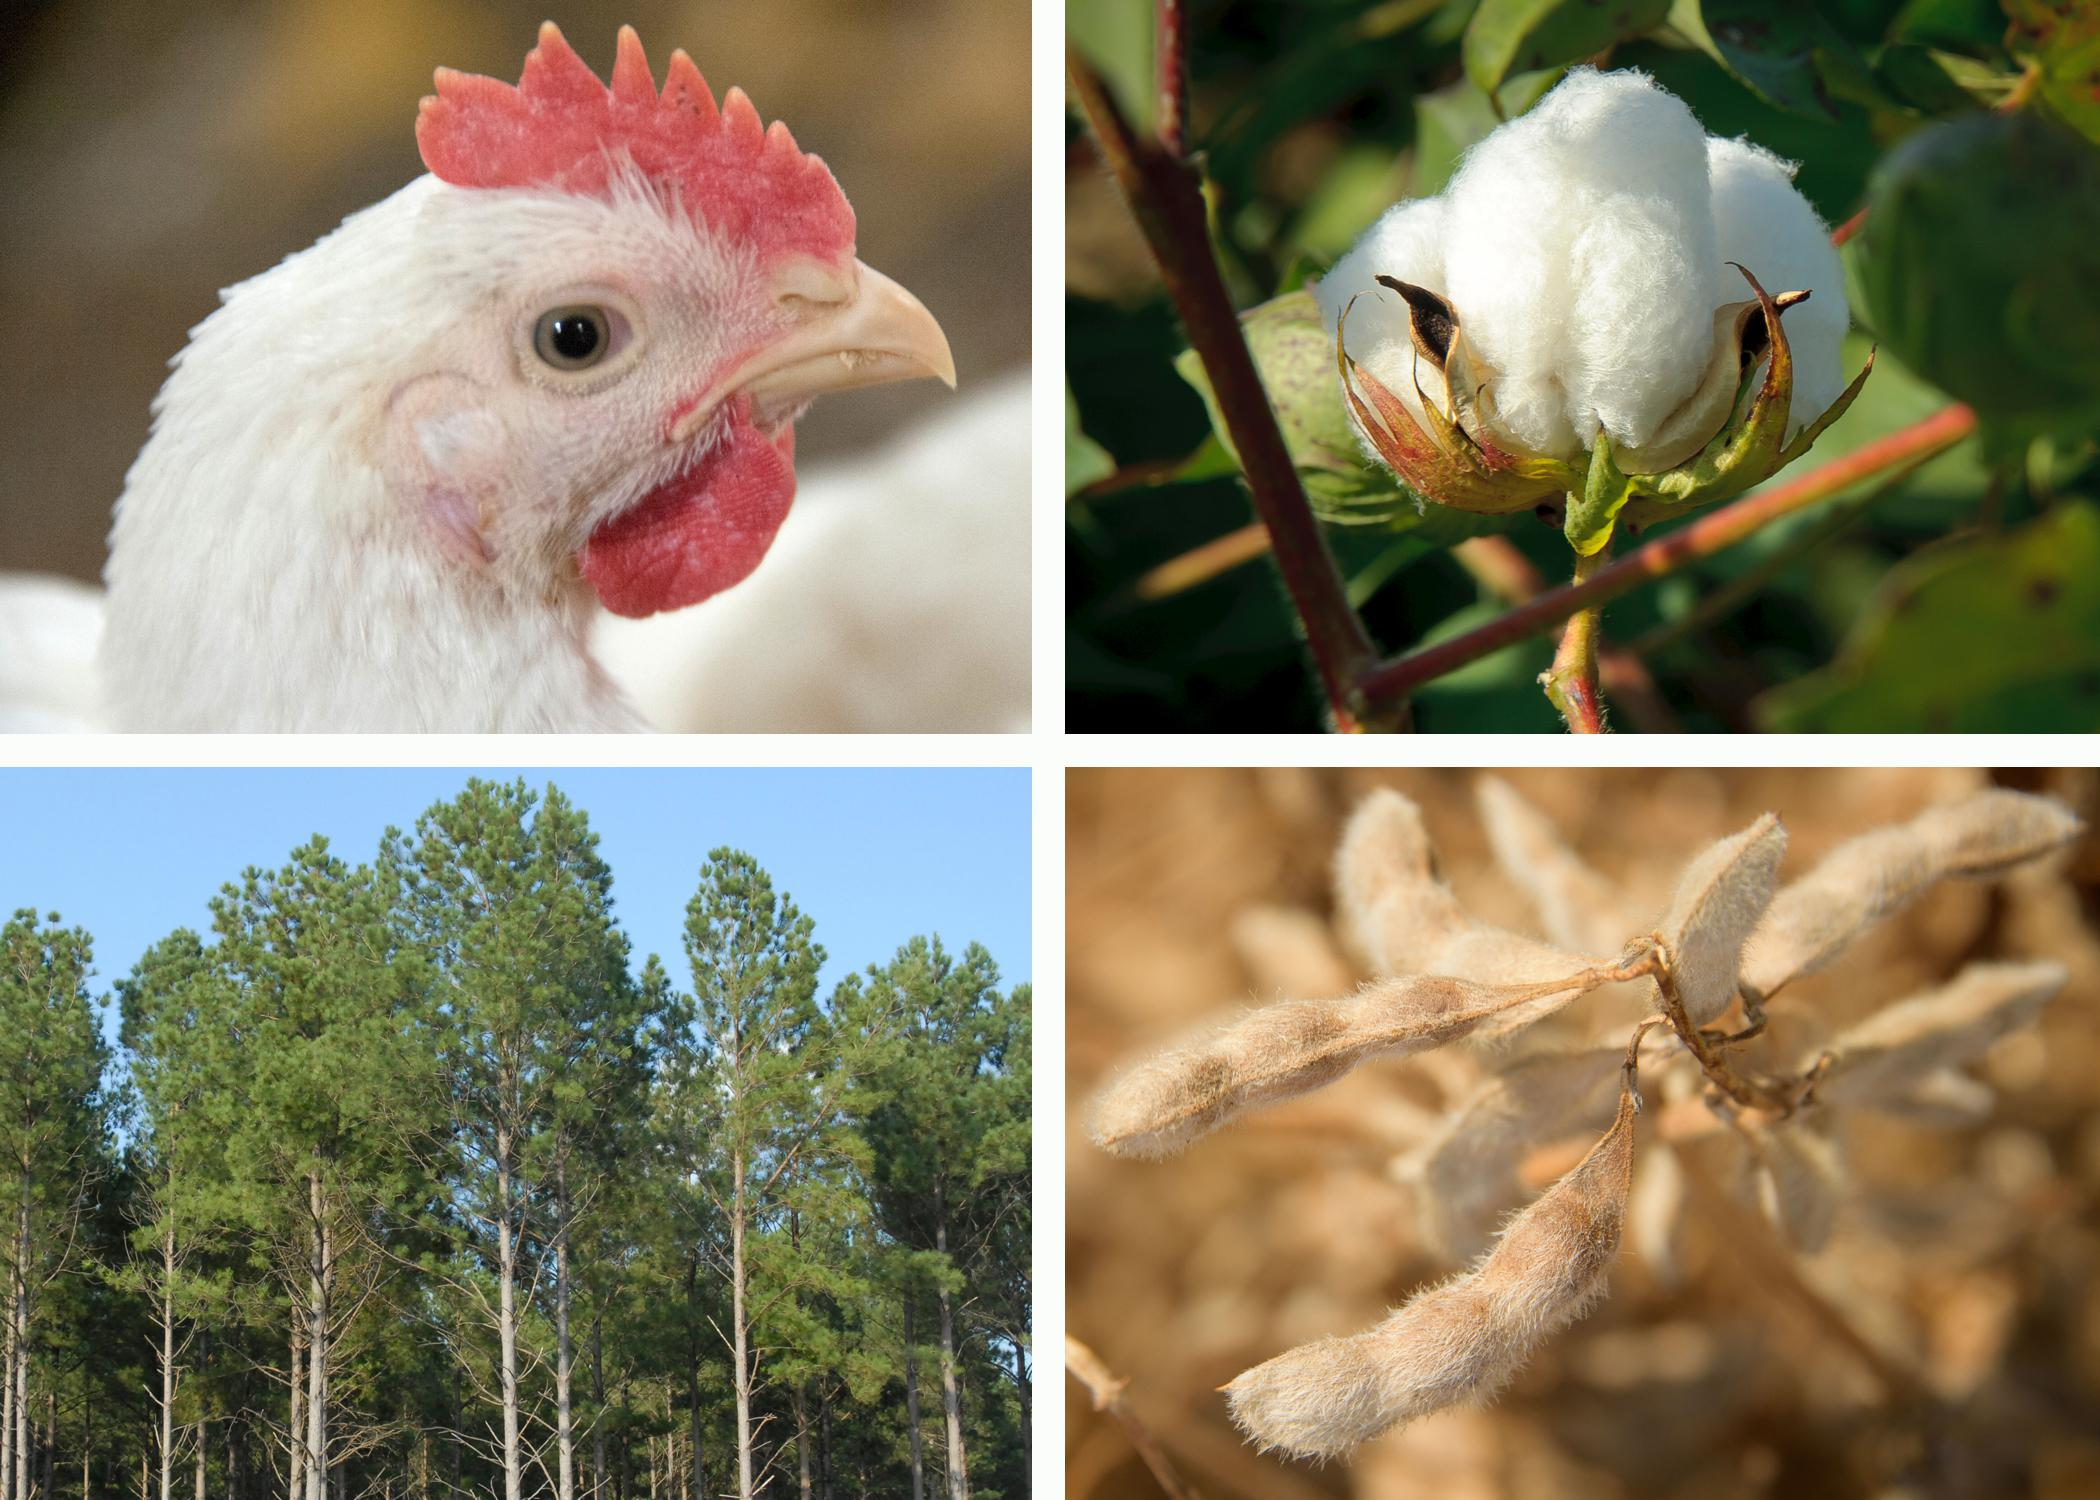 Four panels display a chicken, a cotton boll, a timber stand and a dried soybean plant.